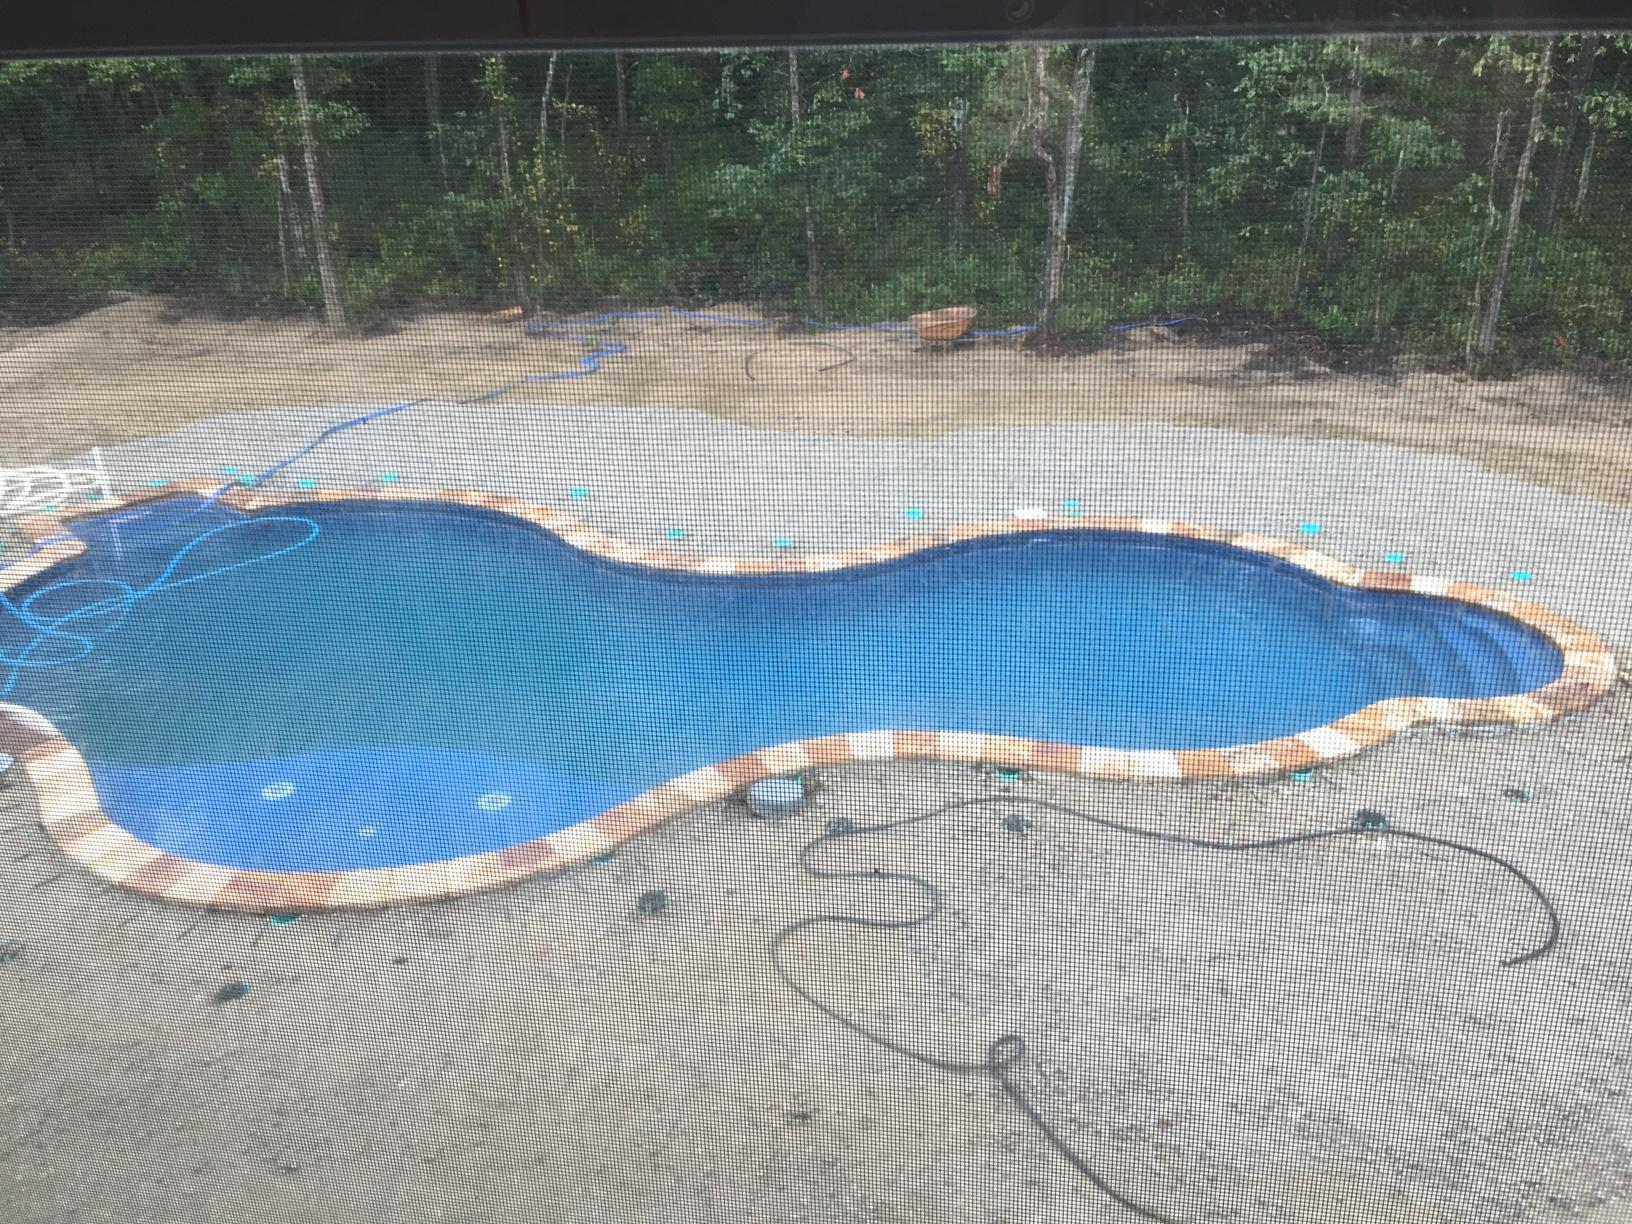 Custom In-ground Radiant Pool Installation in Jackson, NJ - Before Photo